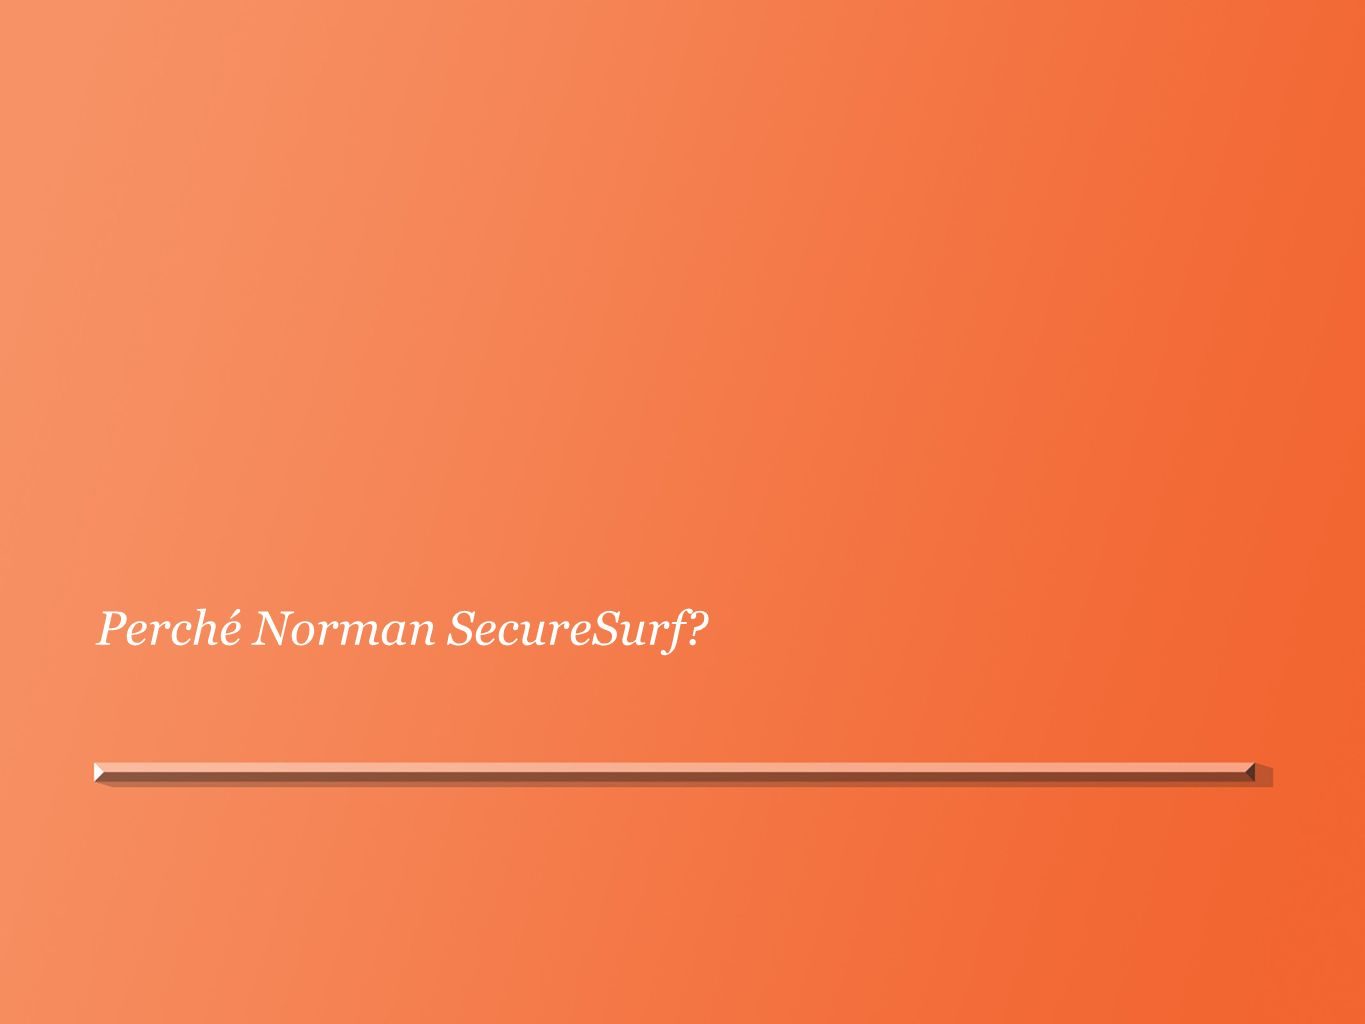 Perché Norman SecureSurf?